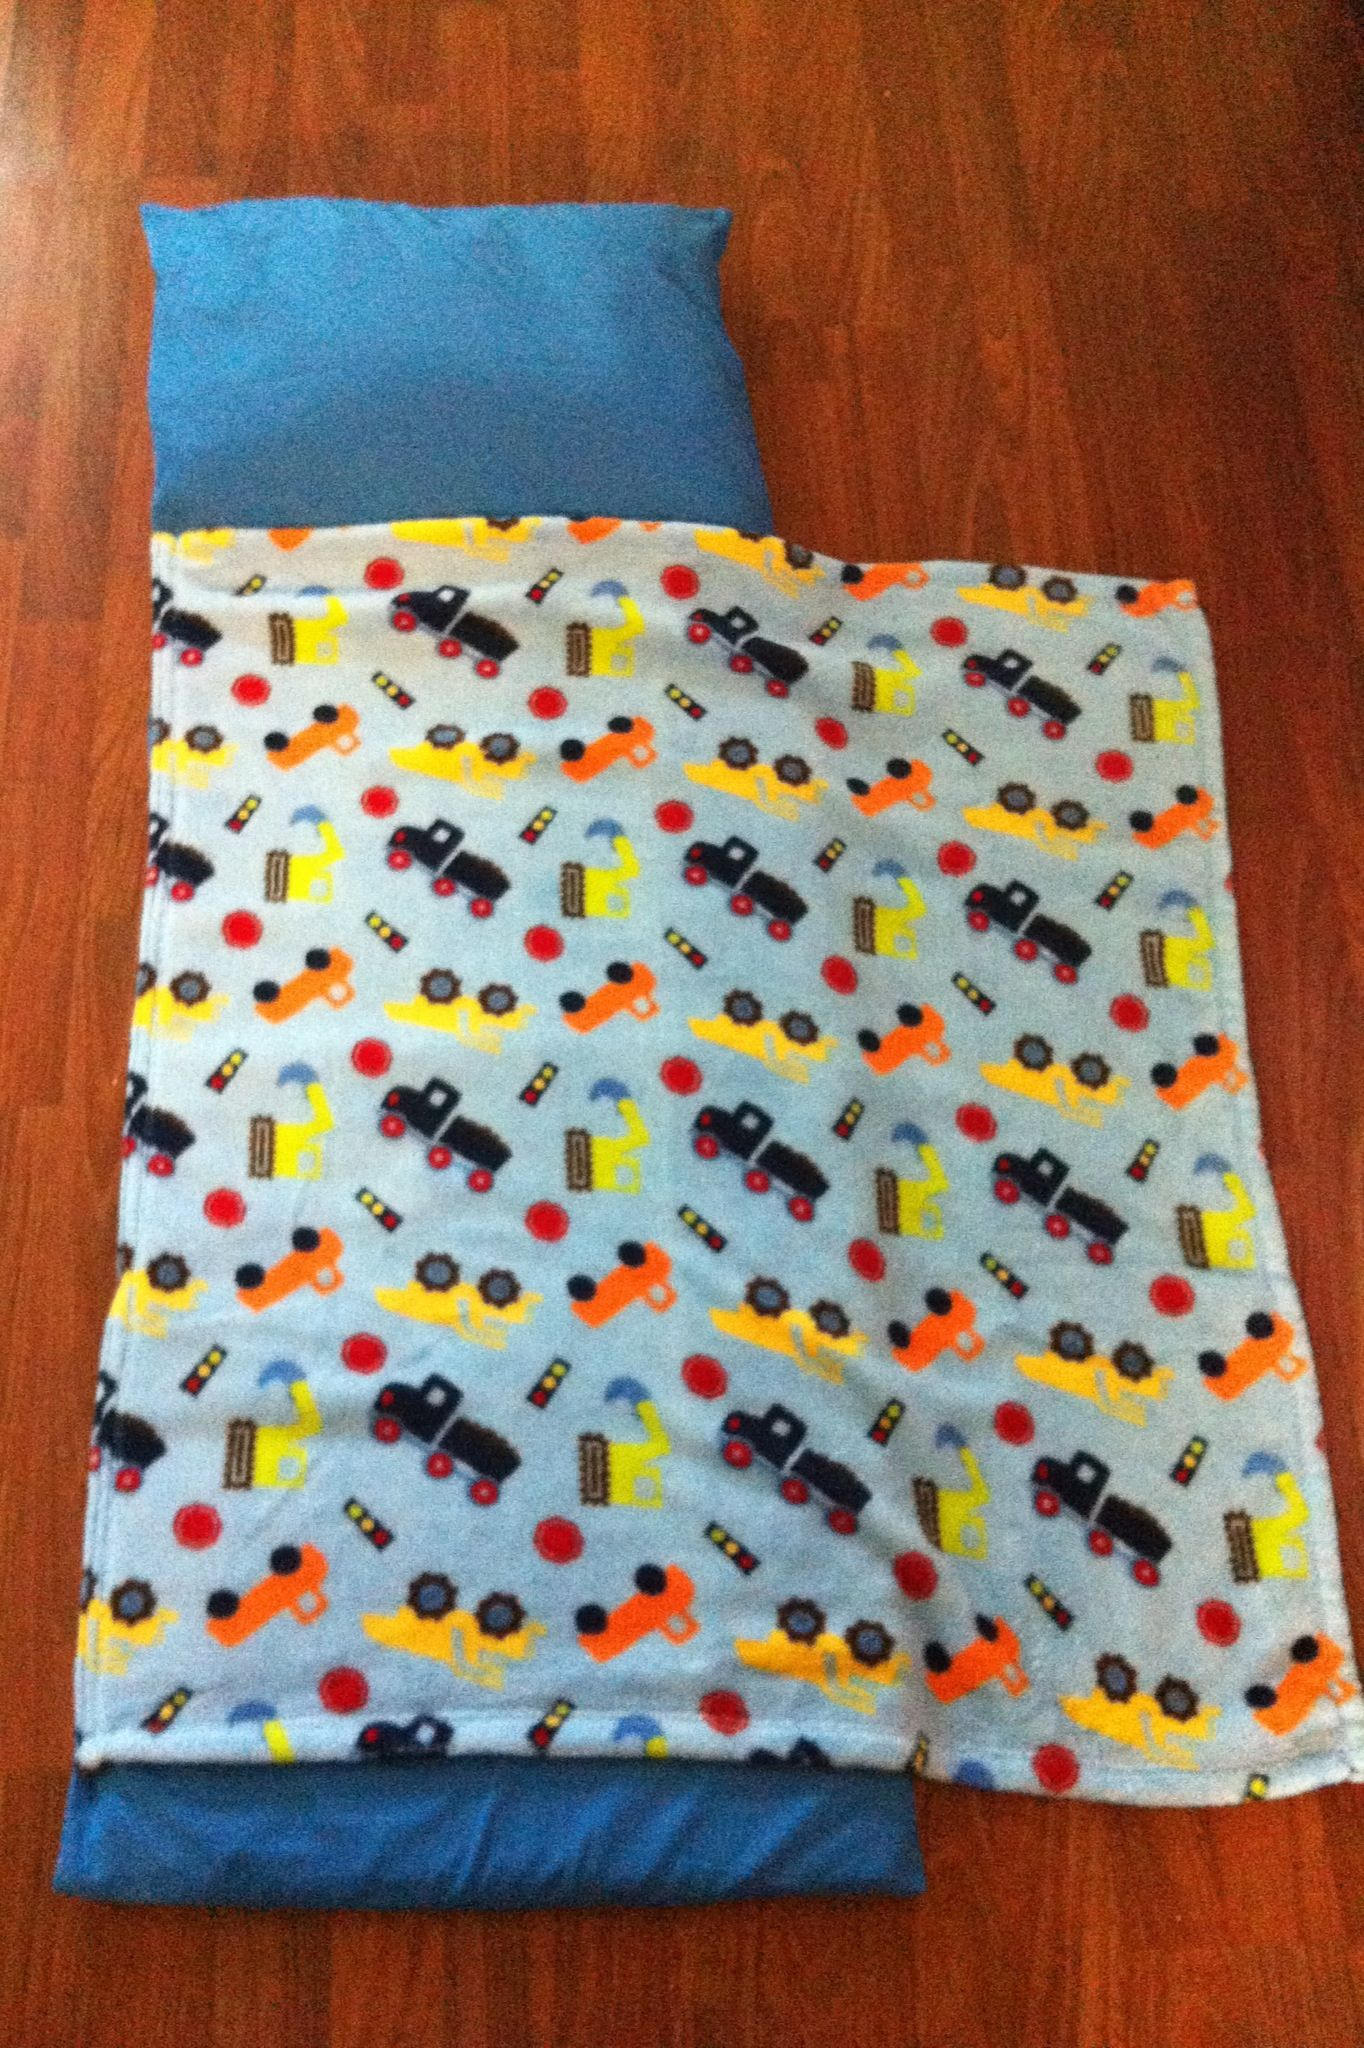 Diy Nap Mat 1 Plastic Nap Mat 1 Body Pillow Cover 1